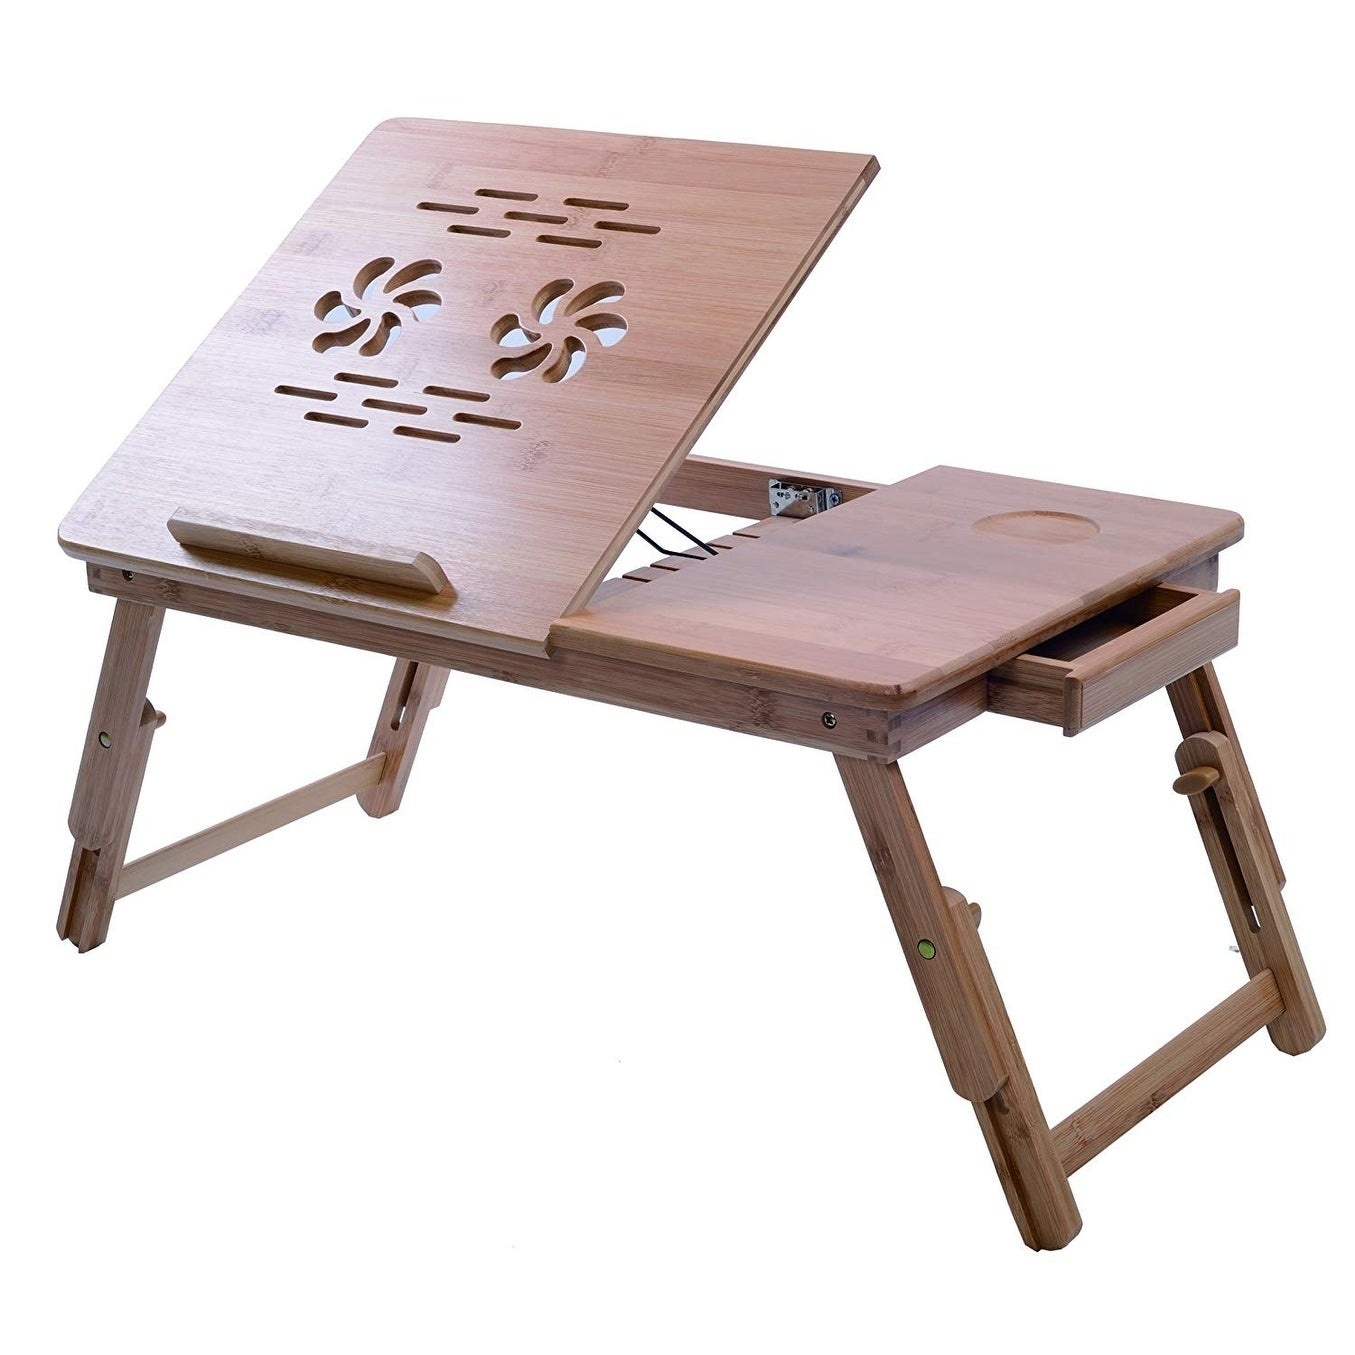 Adjustable Laptop Desk Table Bamboo Foldable Breakfast Serving Bed Tray with Storage Drawer Bamboo Wood Natural